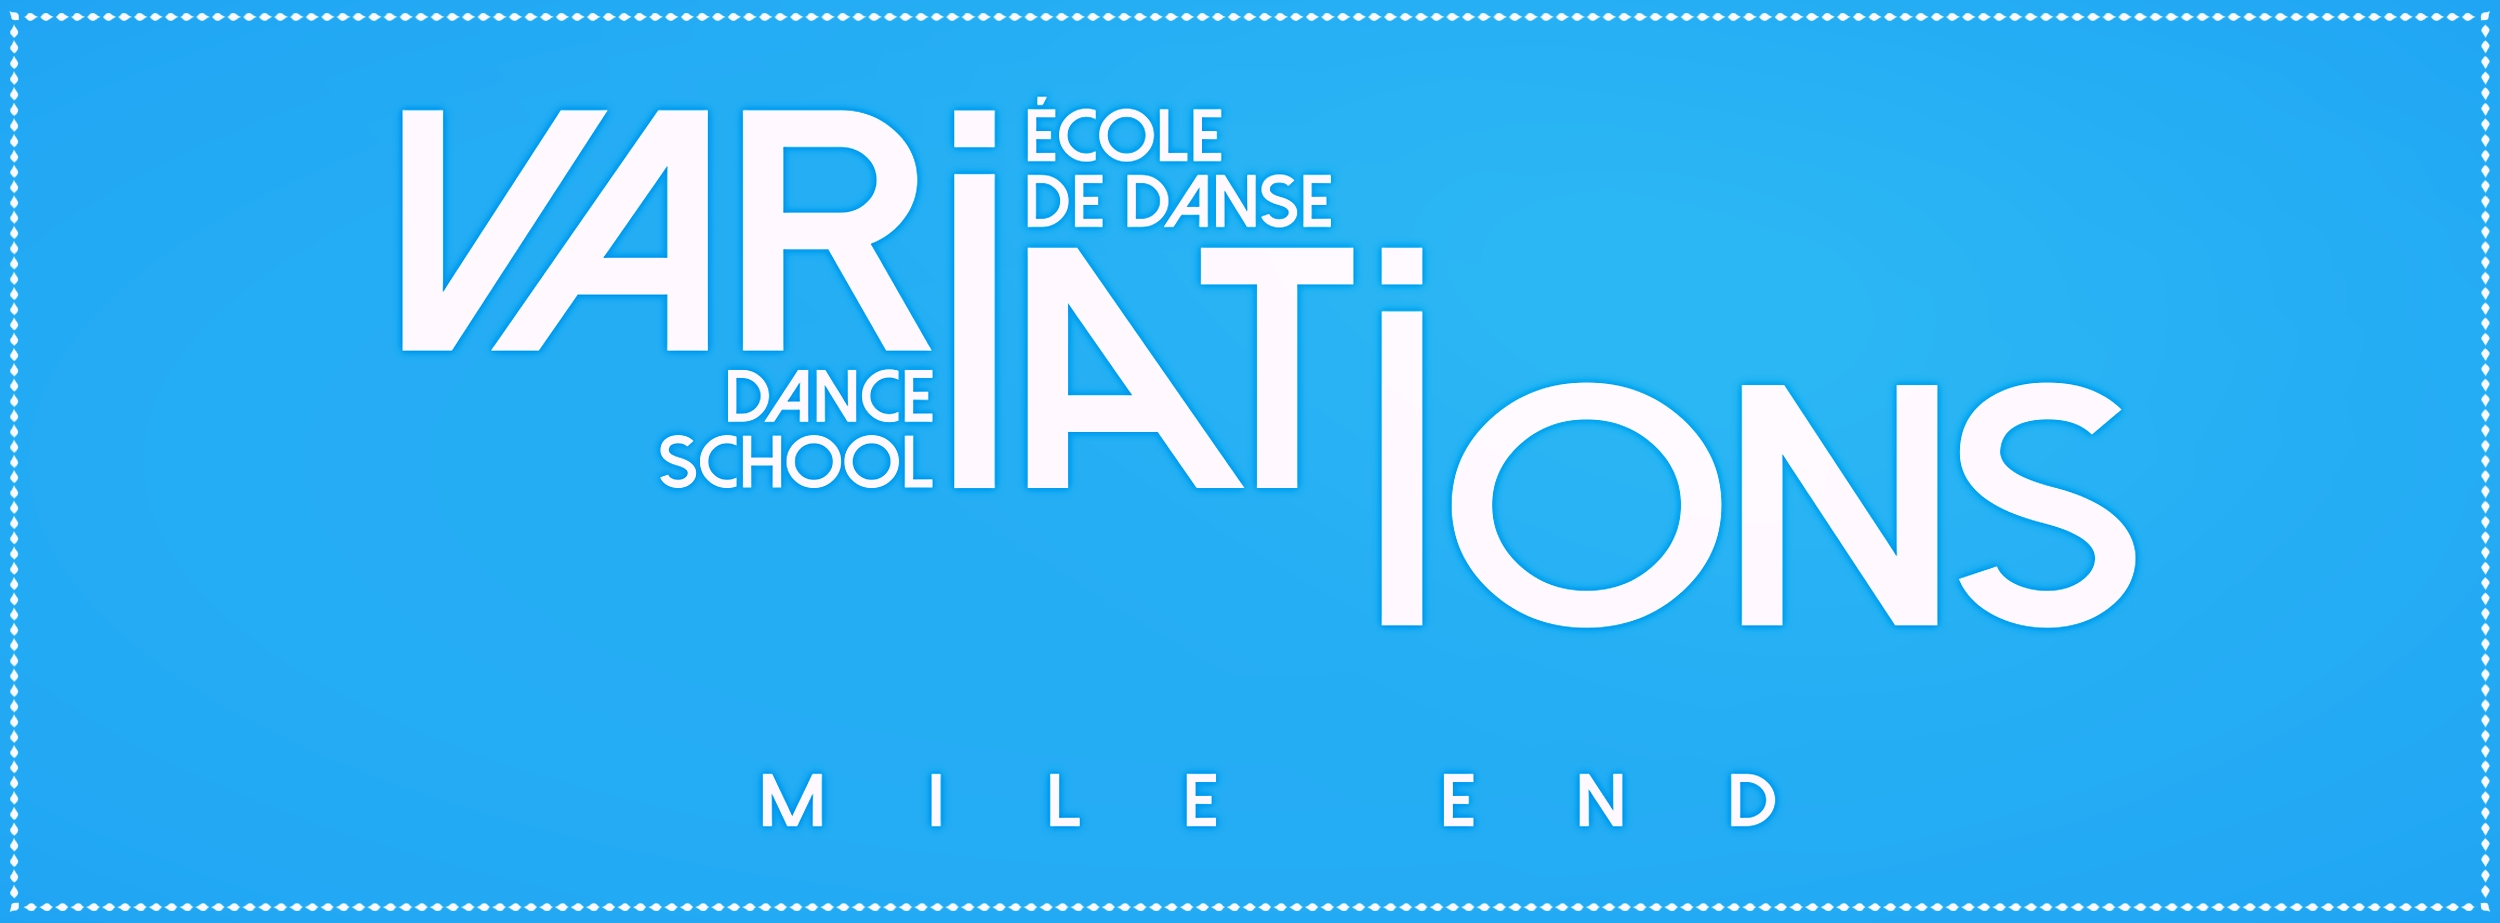 ecole de DANSE VARIATIONS Mileend DANCE school mile-end montreal